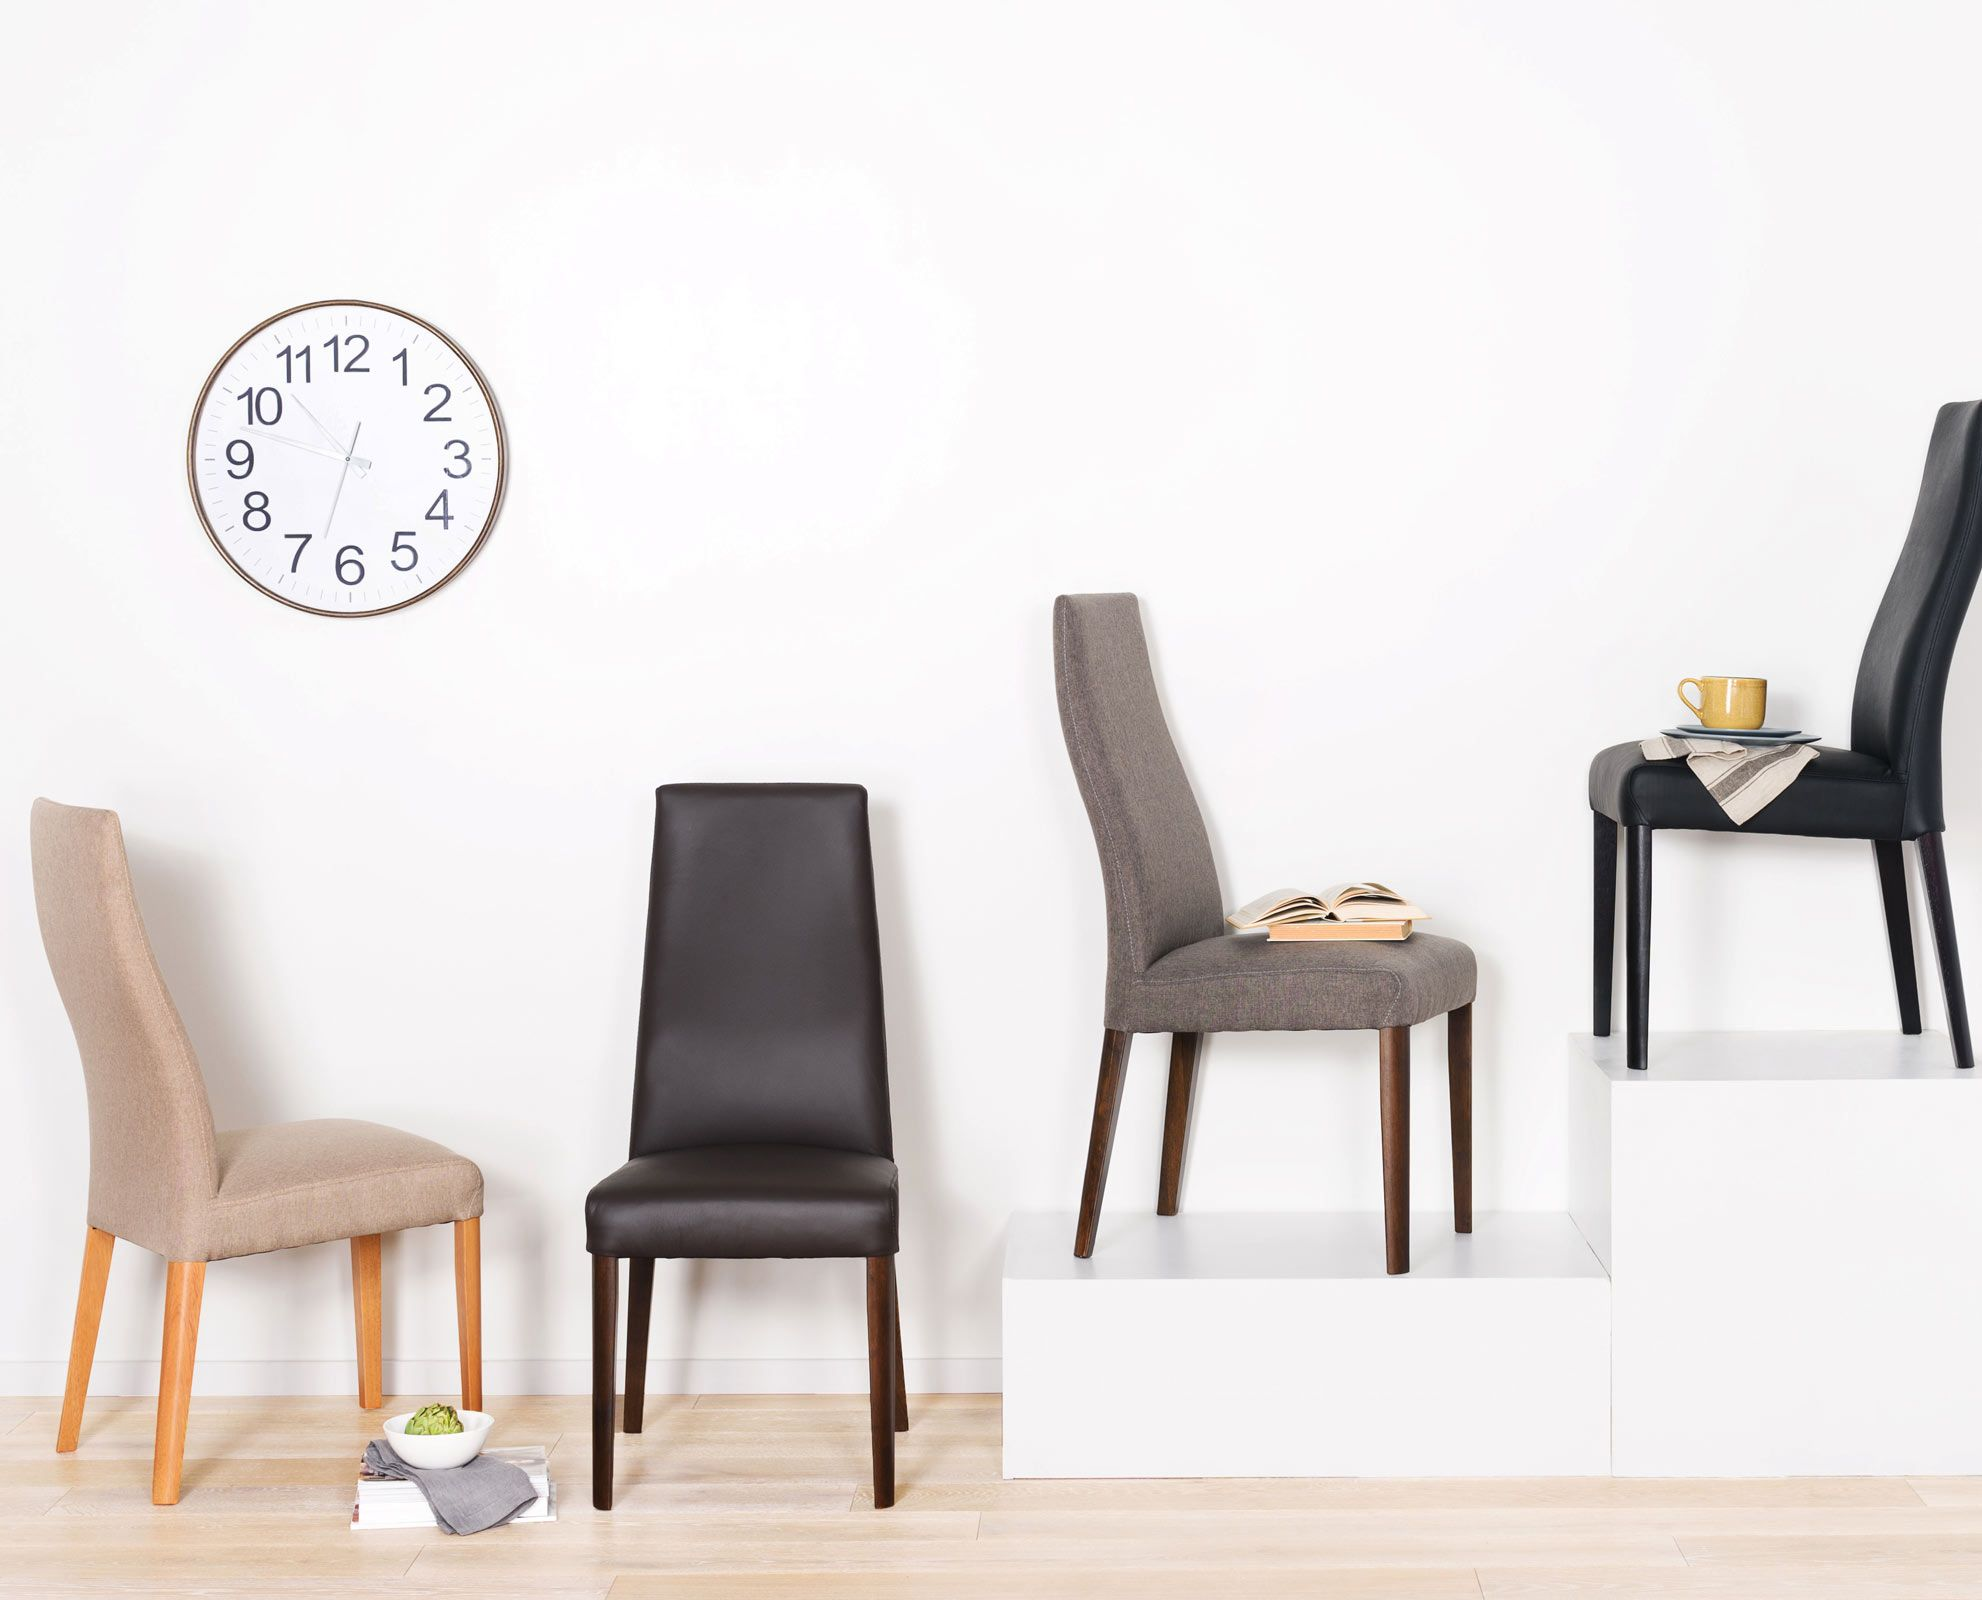 The Lussa Dining Chair From Scandinavian Designs Available In Both Fabric And Leather The Lussa Chair Dining Table Chairs Dining Chairs Fabric Dining Chairs